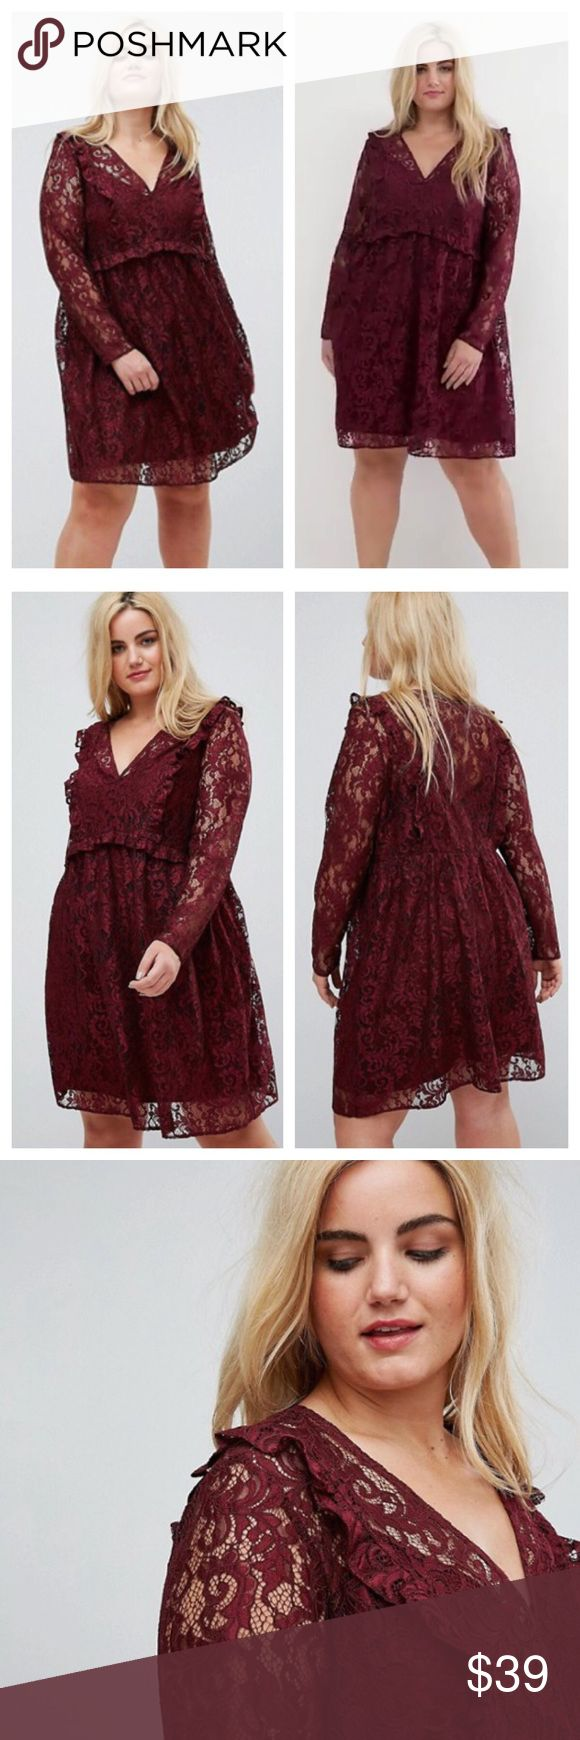 "NWT ASOS Curve Lace Smock Mini Dress W/ Ruffles 18 NWT ASOS Curve Lace Smock Mini Dress W/ Ruffles Oxblood Burgundy  Sz 18 Plus size Includes a slip dress in coordinating color (not attached). Slip dress has adjustable spaghetti straps.  V neck Long sleeves Smock style Ruffles Relaxed shape Measured flat  22.5"" bust  15"" shoulders  18.5"" sleeve inseam  20"" waist 29"" hips  36"" length ASOS Curve Dresses"